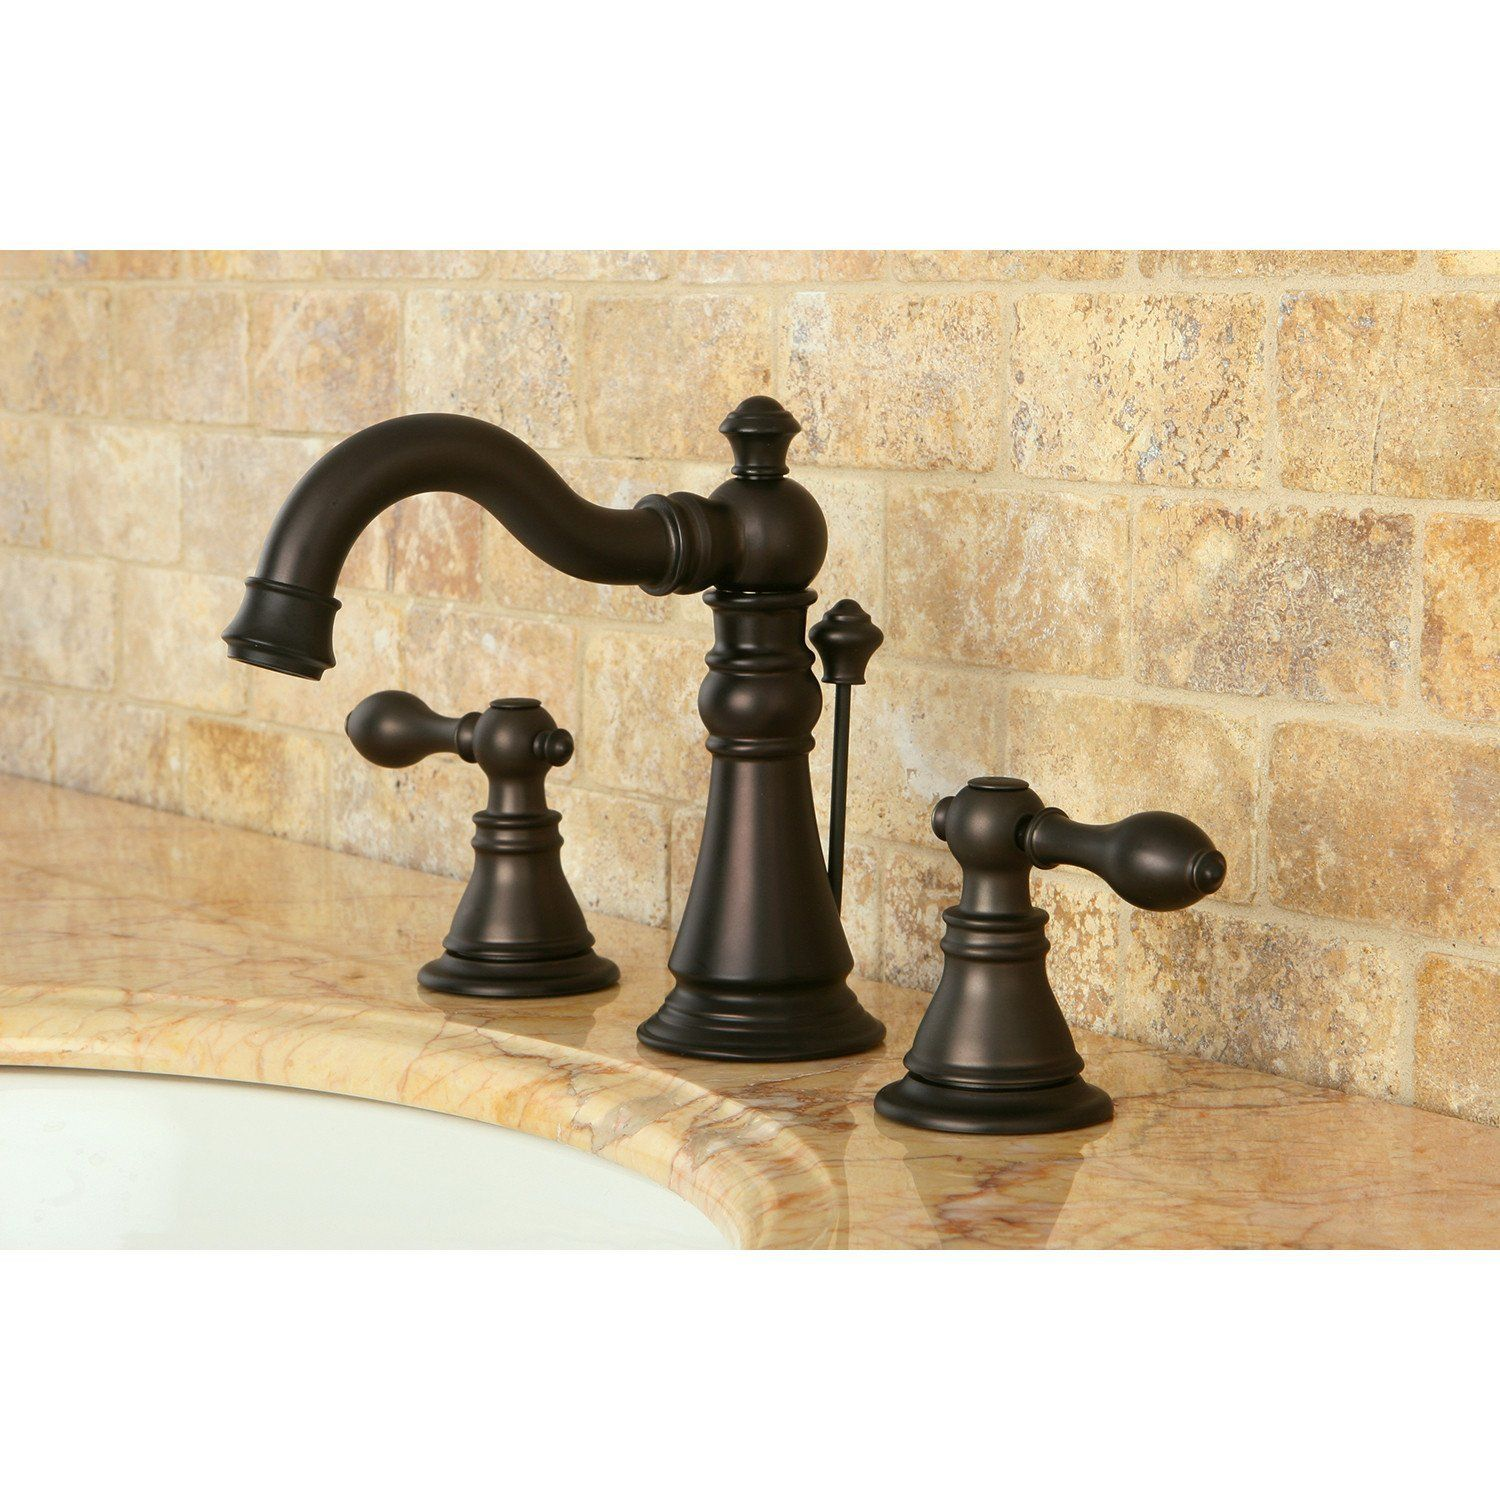 Kingston Oil Rubbed Bronze 2 Handle 8 Widespread Bathroom Faucet Fs1975acl In 2021 Bathroom Faucets Widespread Bathroom Faucet Bronze Bathroom Oil rubbed bronze widespread bathroom faucet